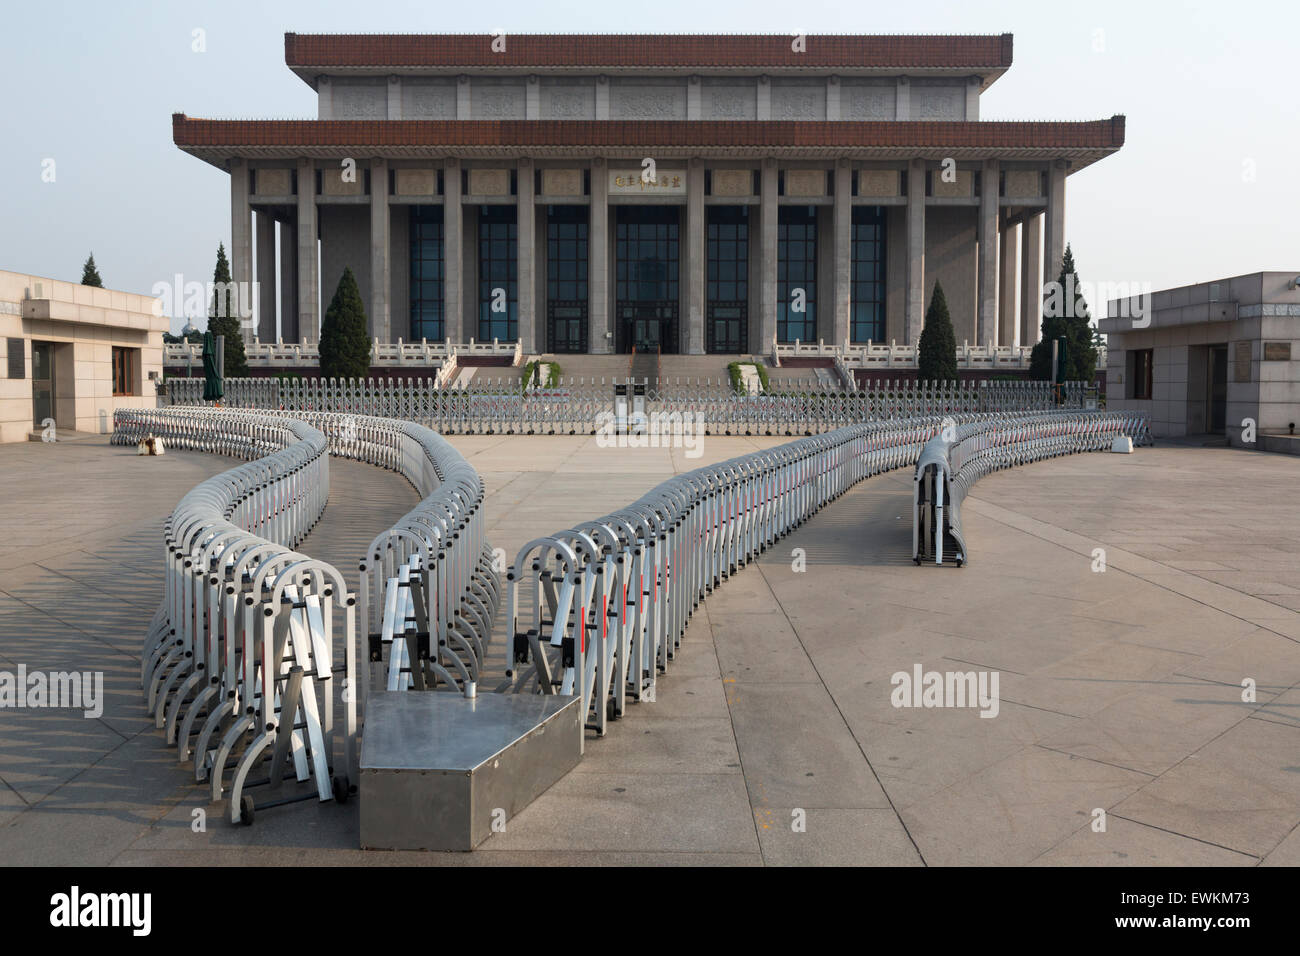 mausoleum of mao zedong chairman mao memorial hall in tiananmen square beijing